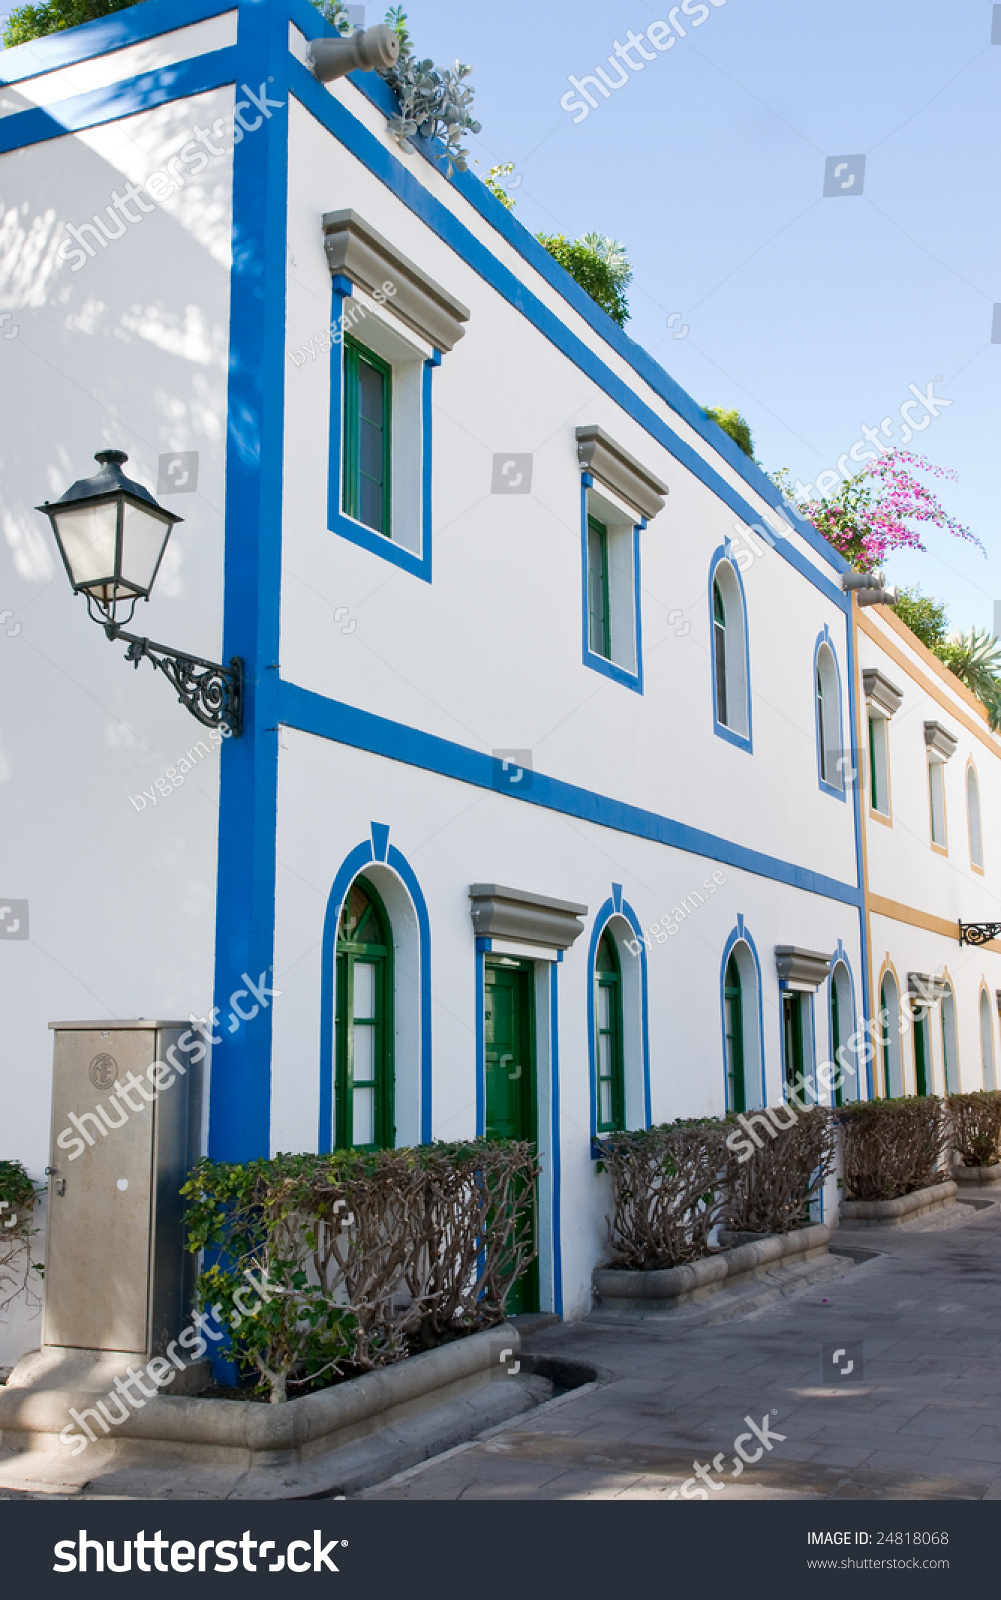 Gran canaria house stock photo 24818068 shutterstock - Houses in gran canaria ...